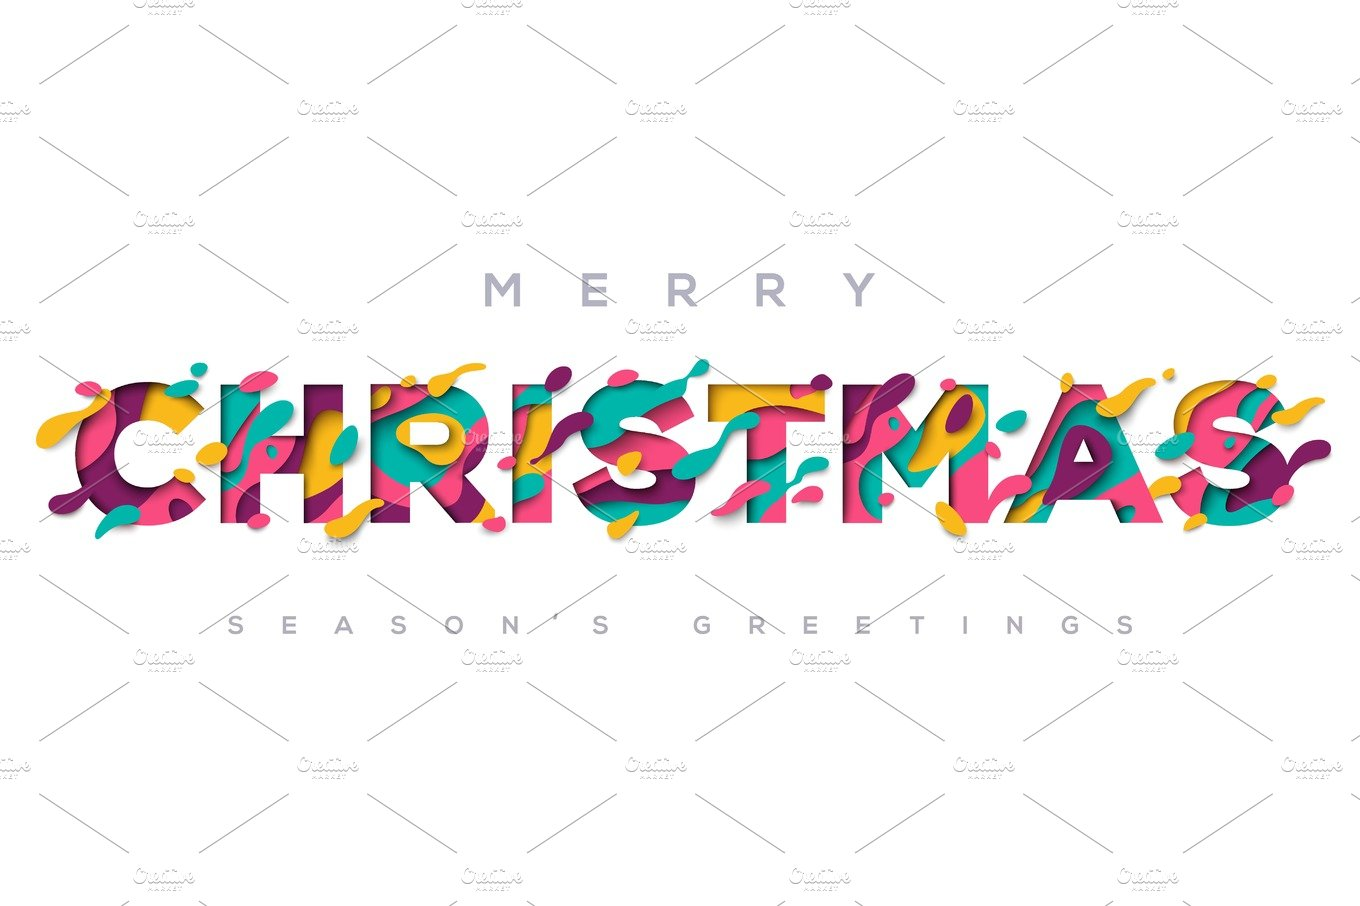 Merry Christmas typography on white background.